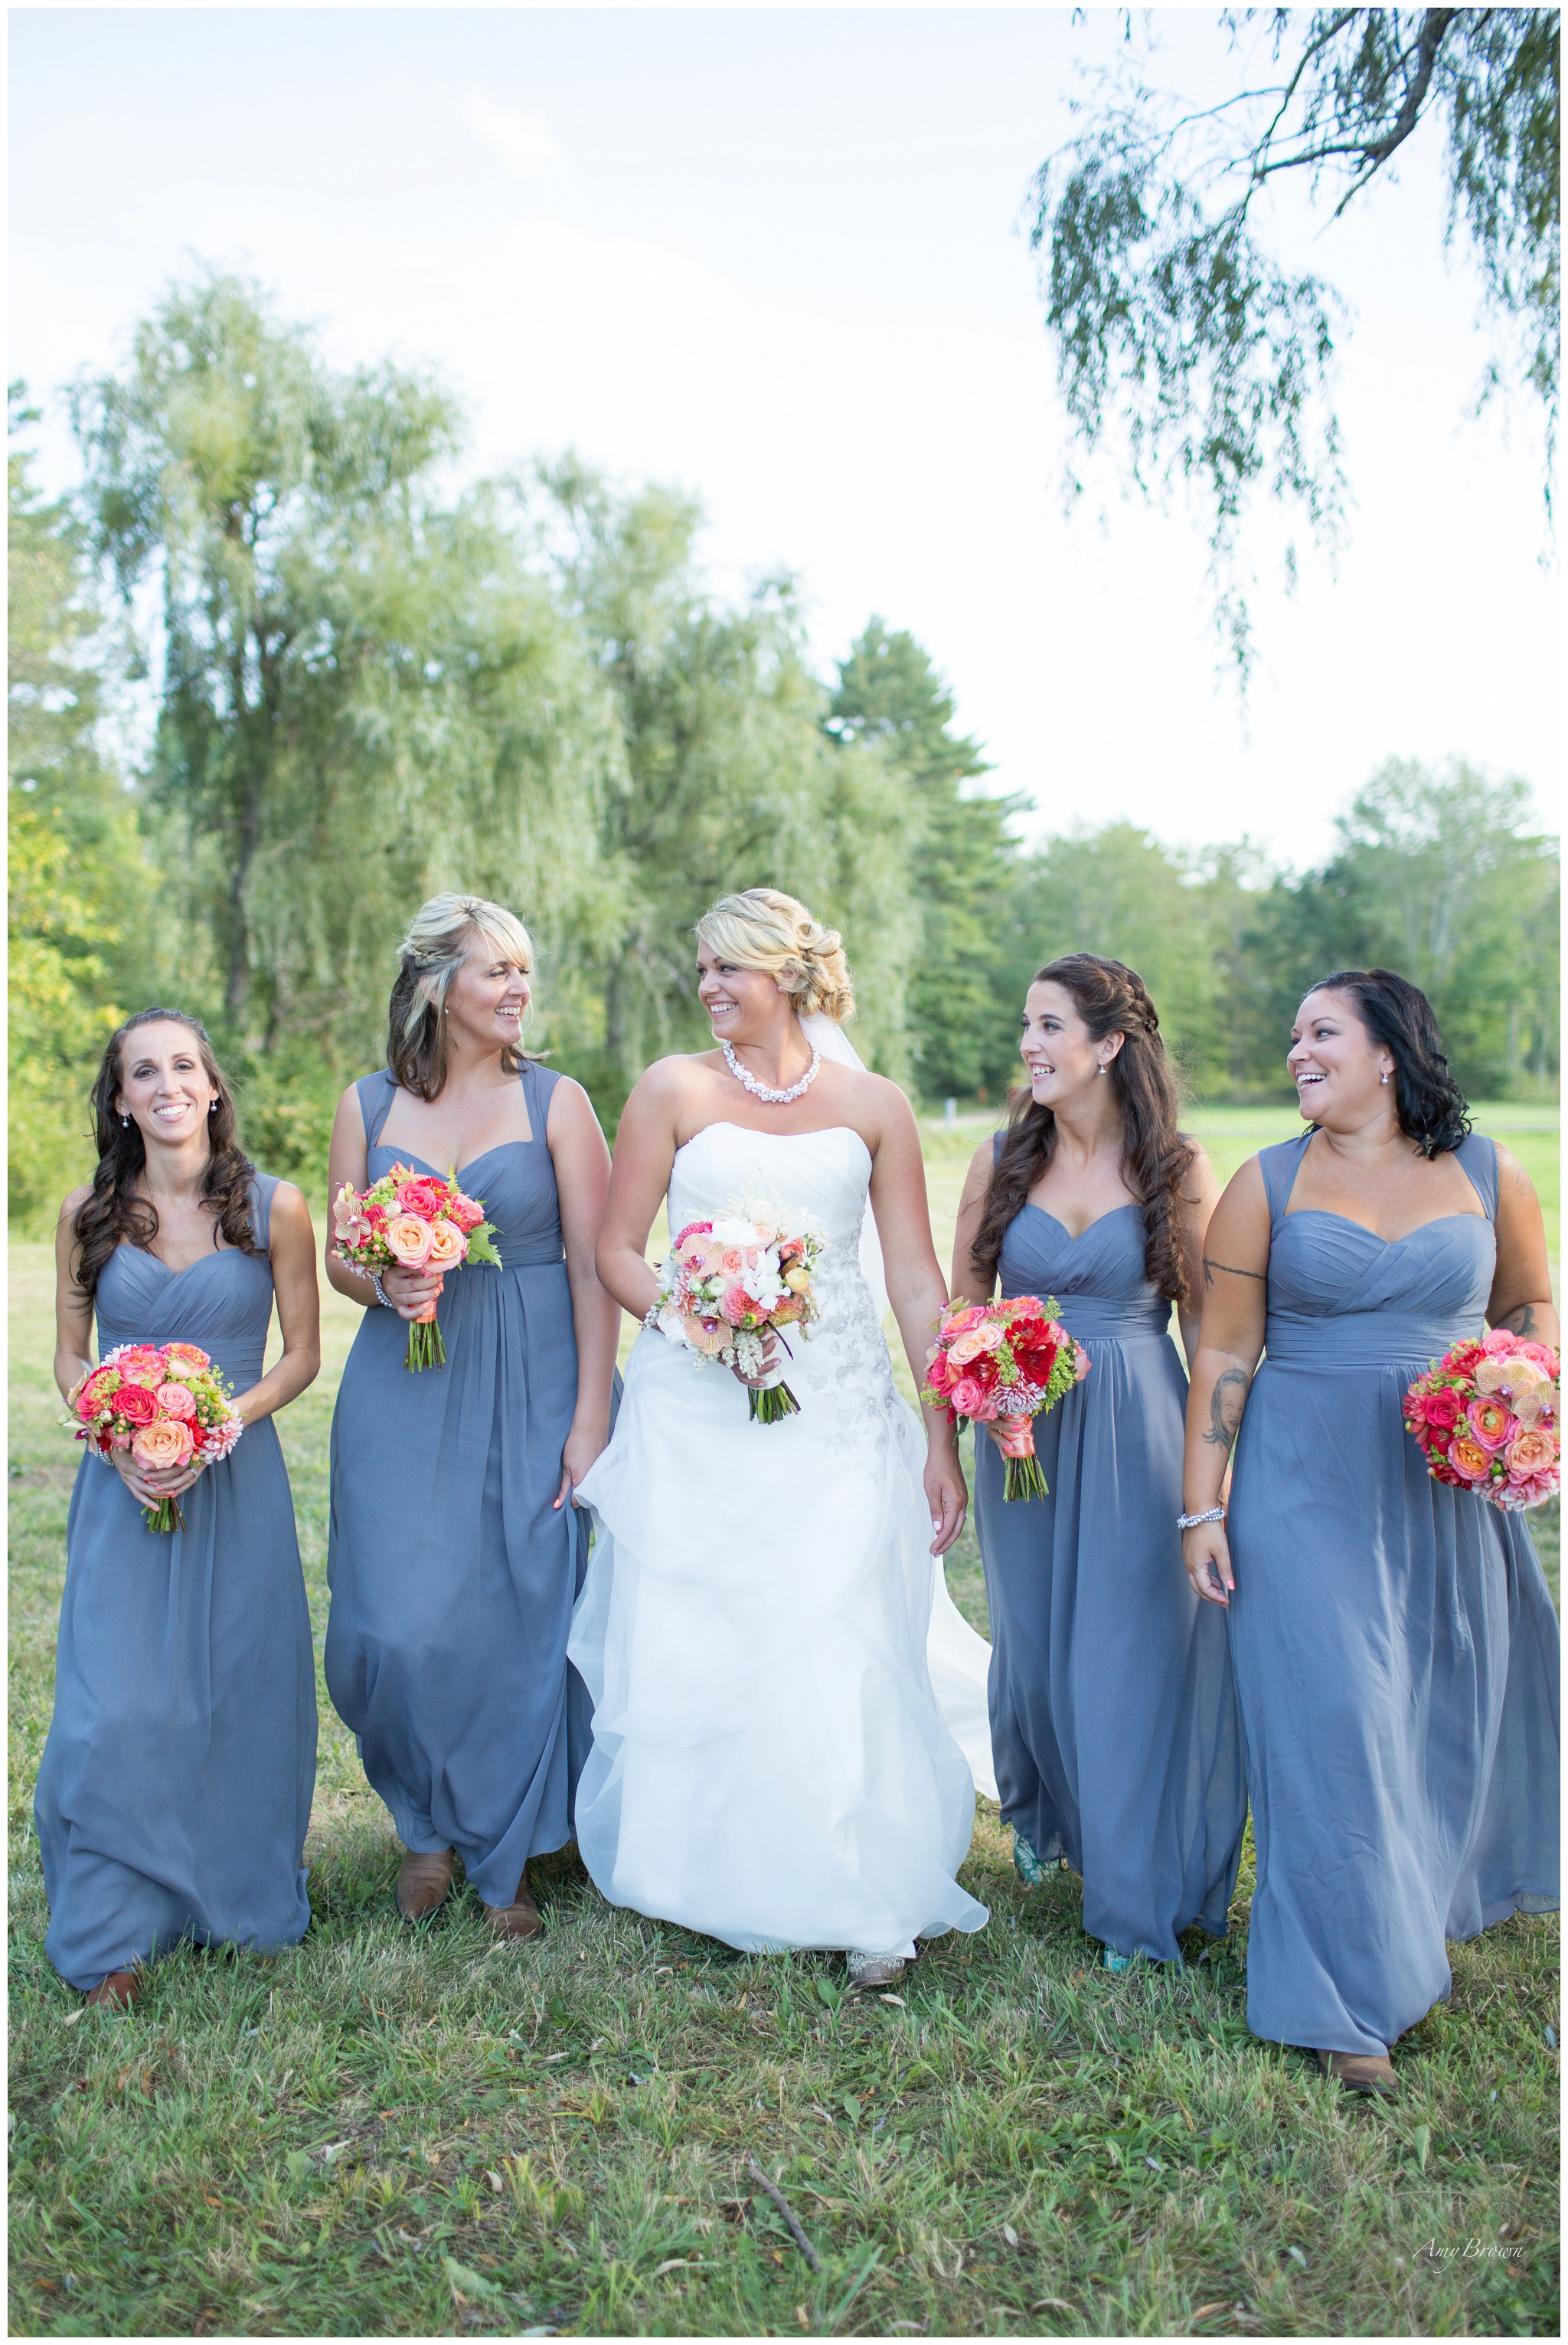 Seacoast NH Wedding Photographer |  grey bridesmaids dresses | Amy Brown Photography